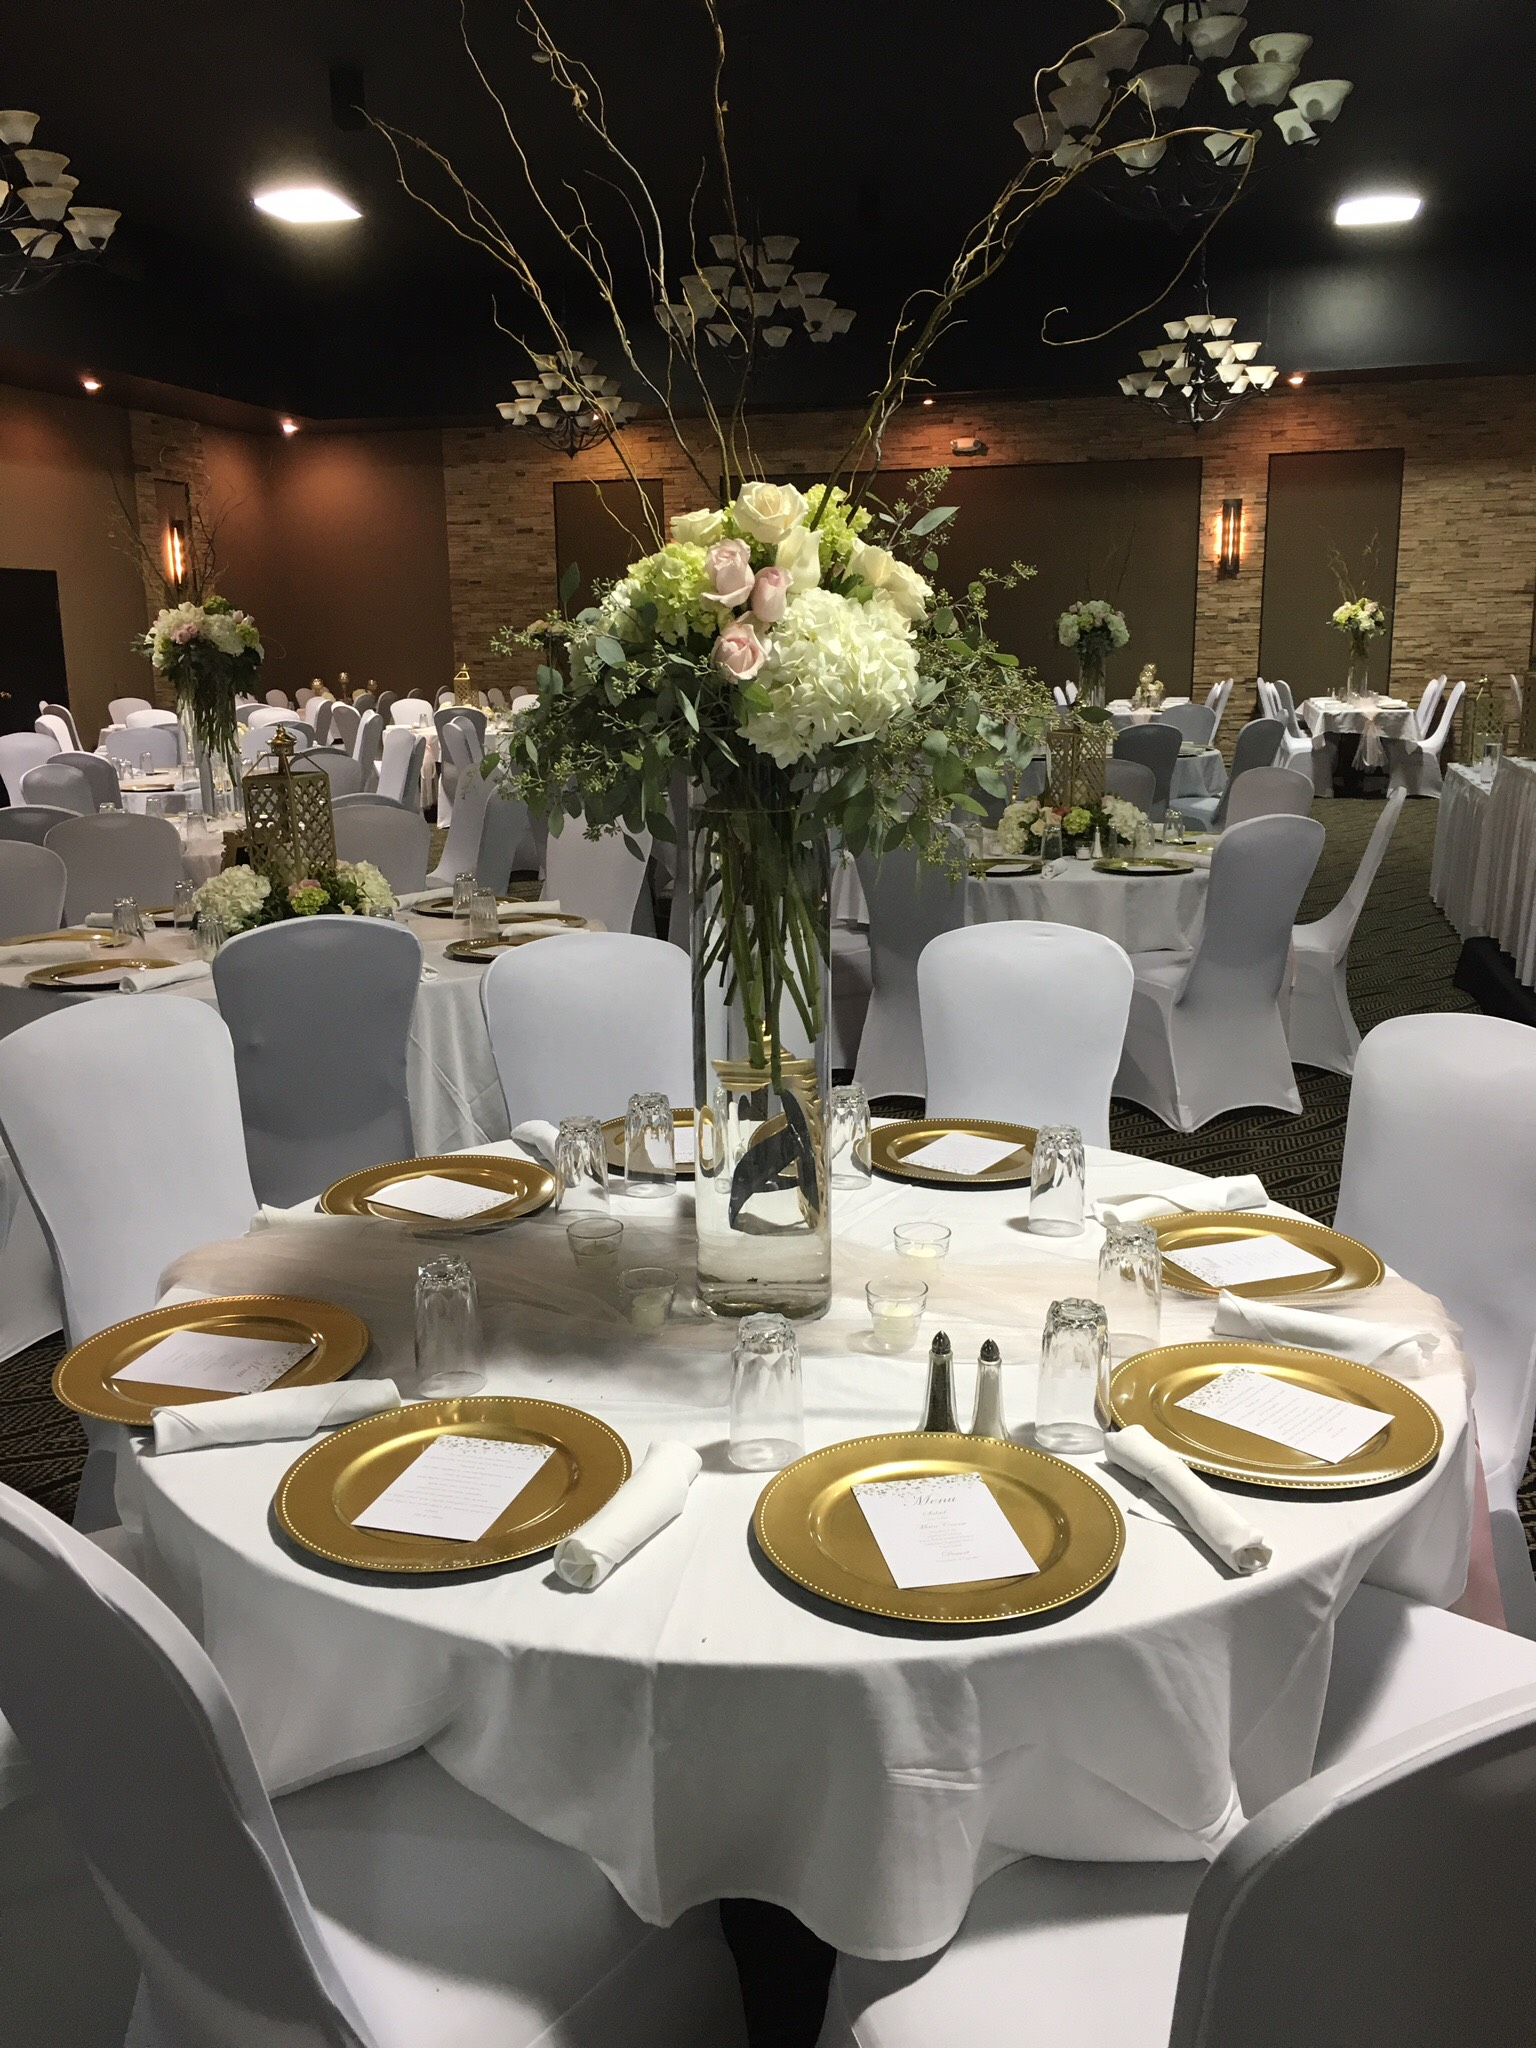 Gold chargers with white chair covers